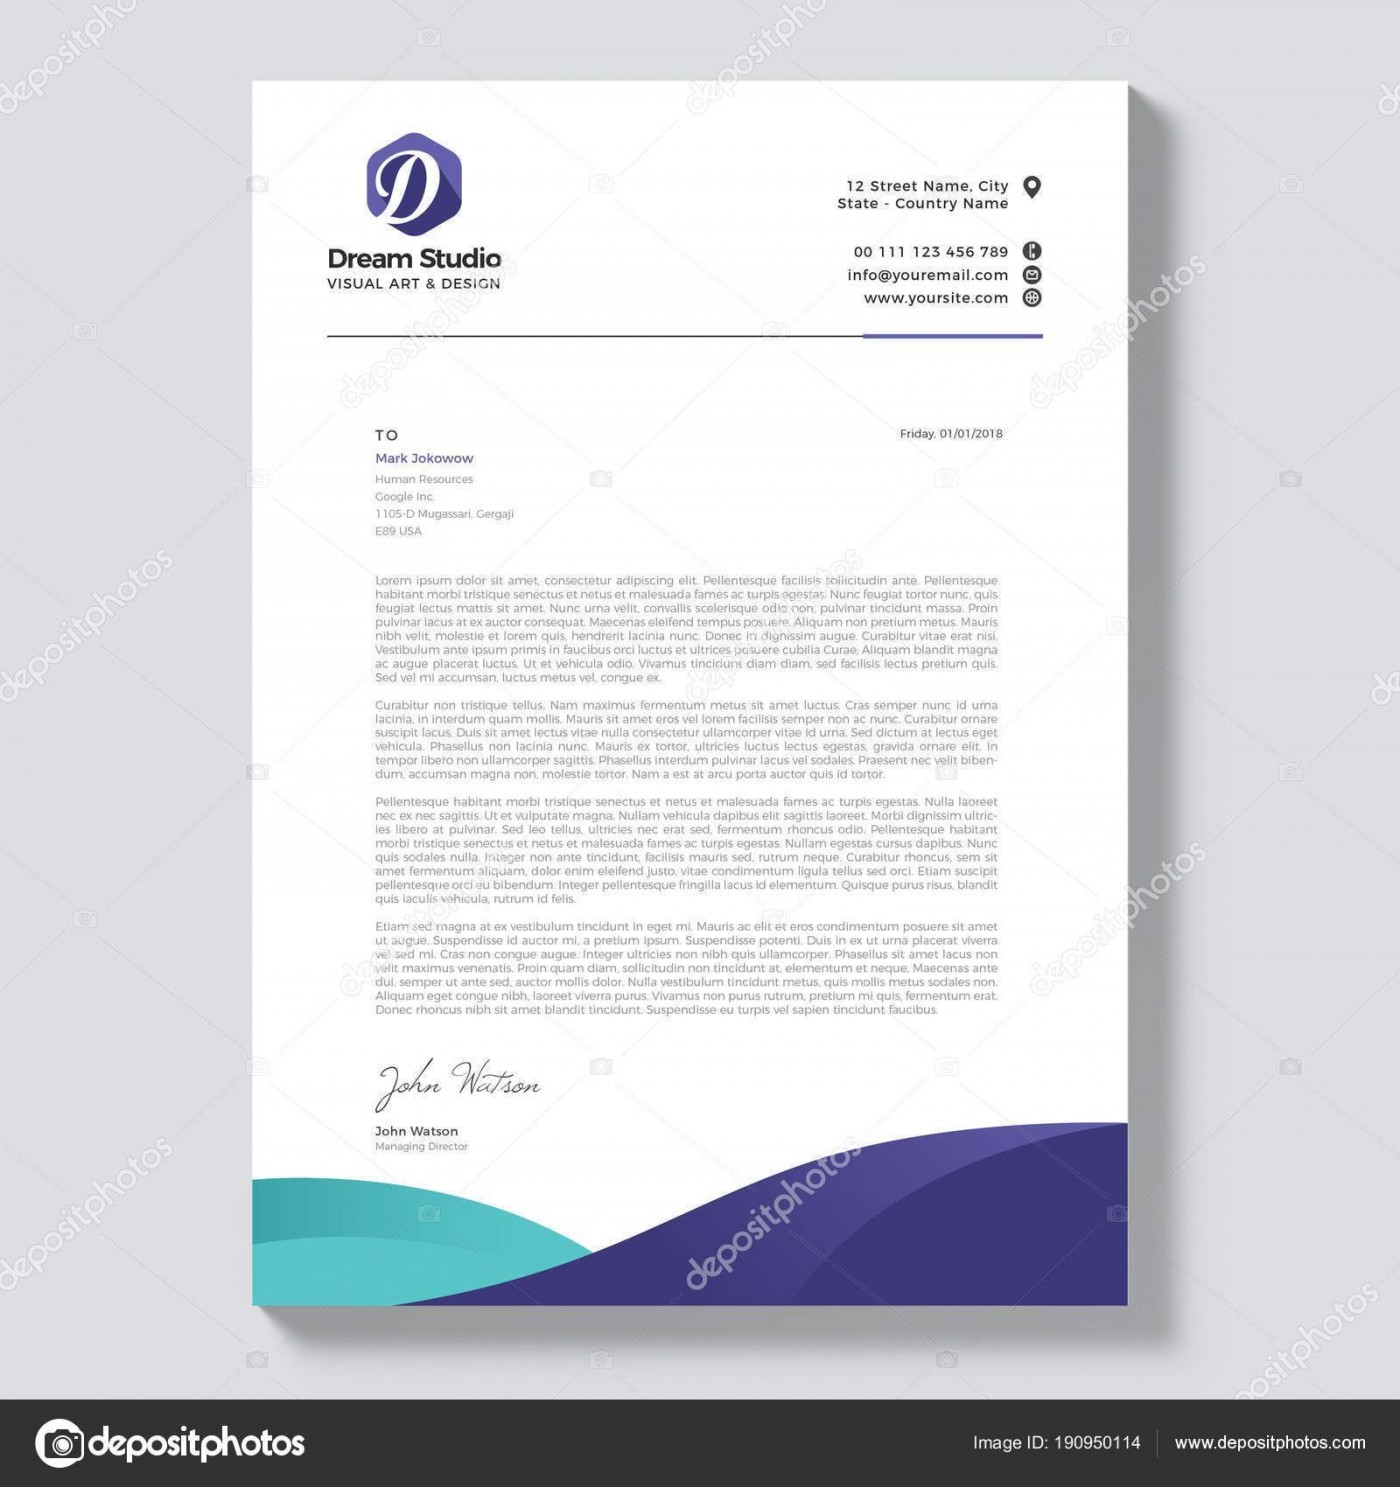 004 Astounding Sample Letterhead Template Free Download High Resolution  Professional Design In Word Format1400